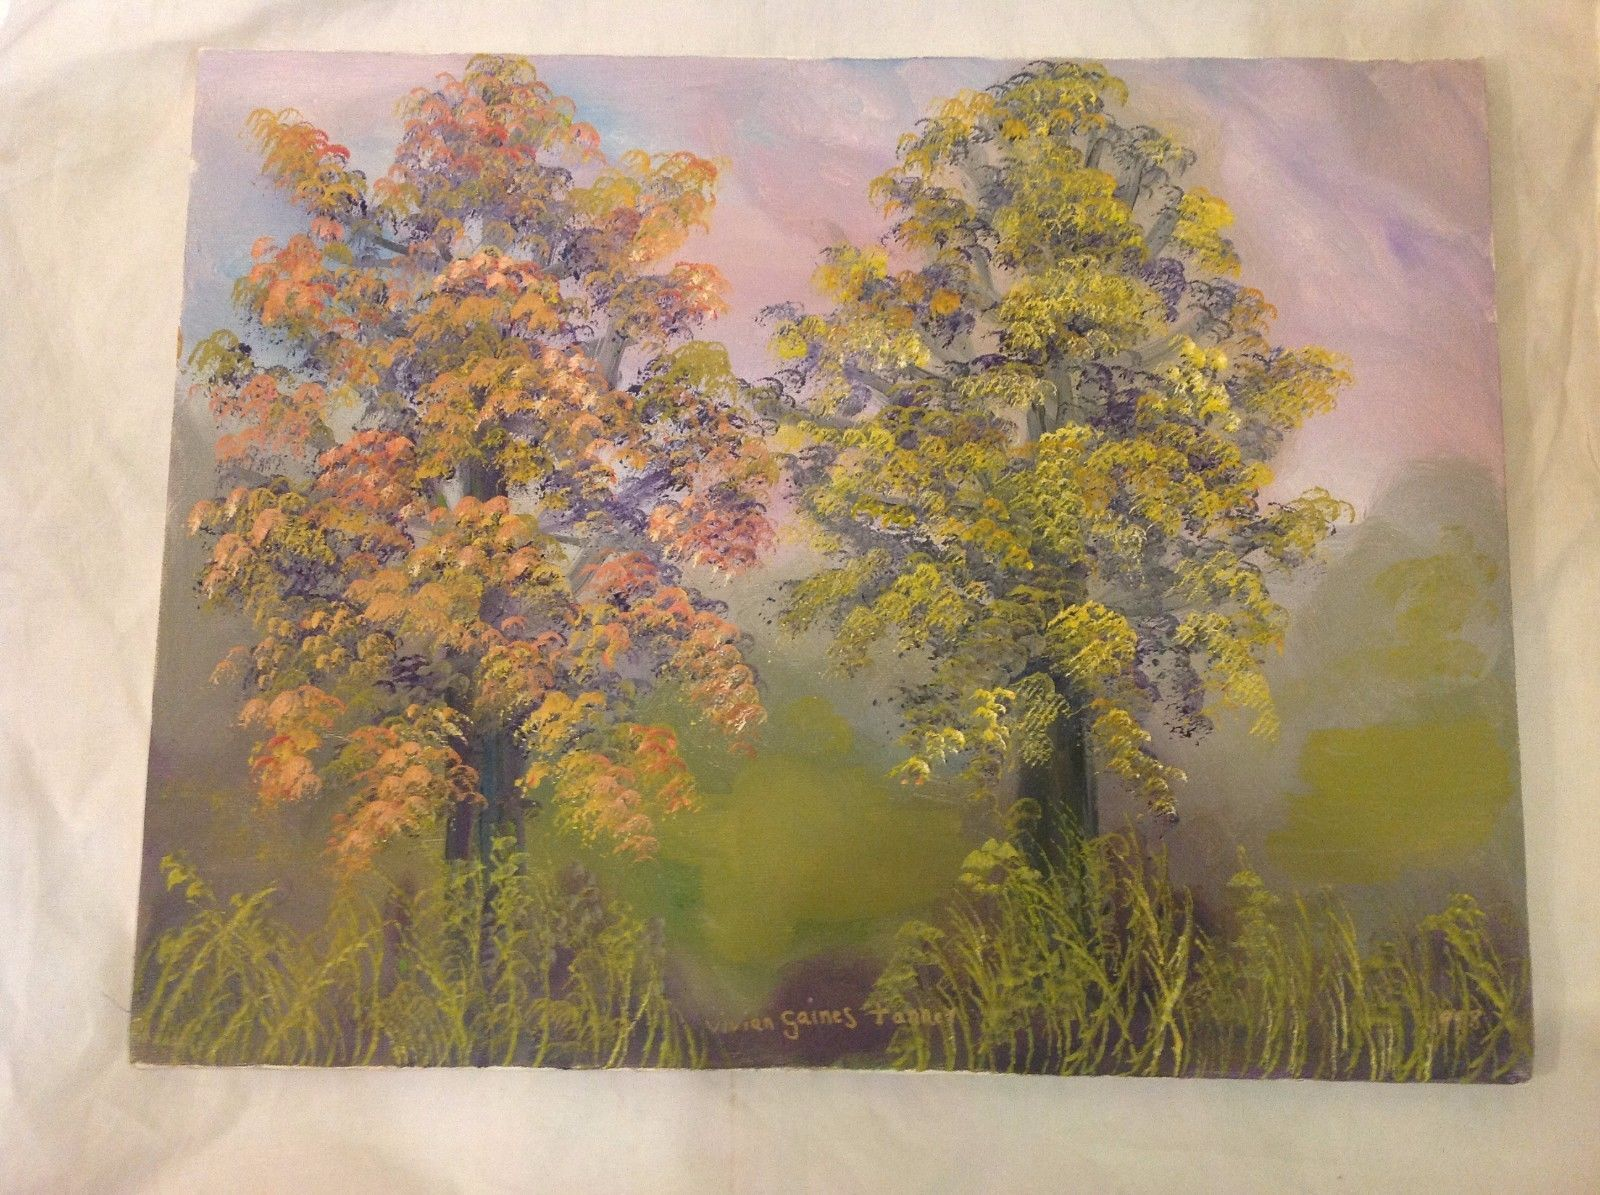 Painting Original A Tree Duet Vivian Gaines Tanner Hudson Valley Artist